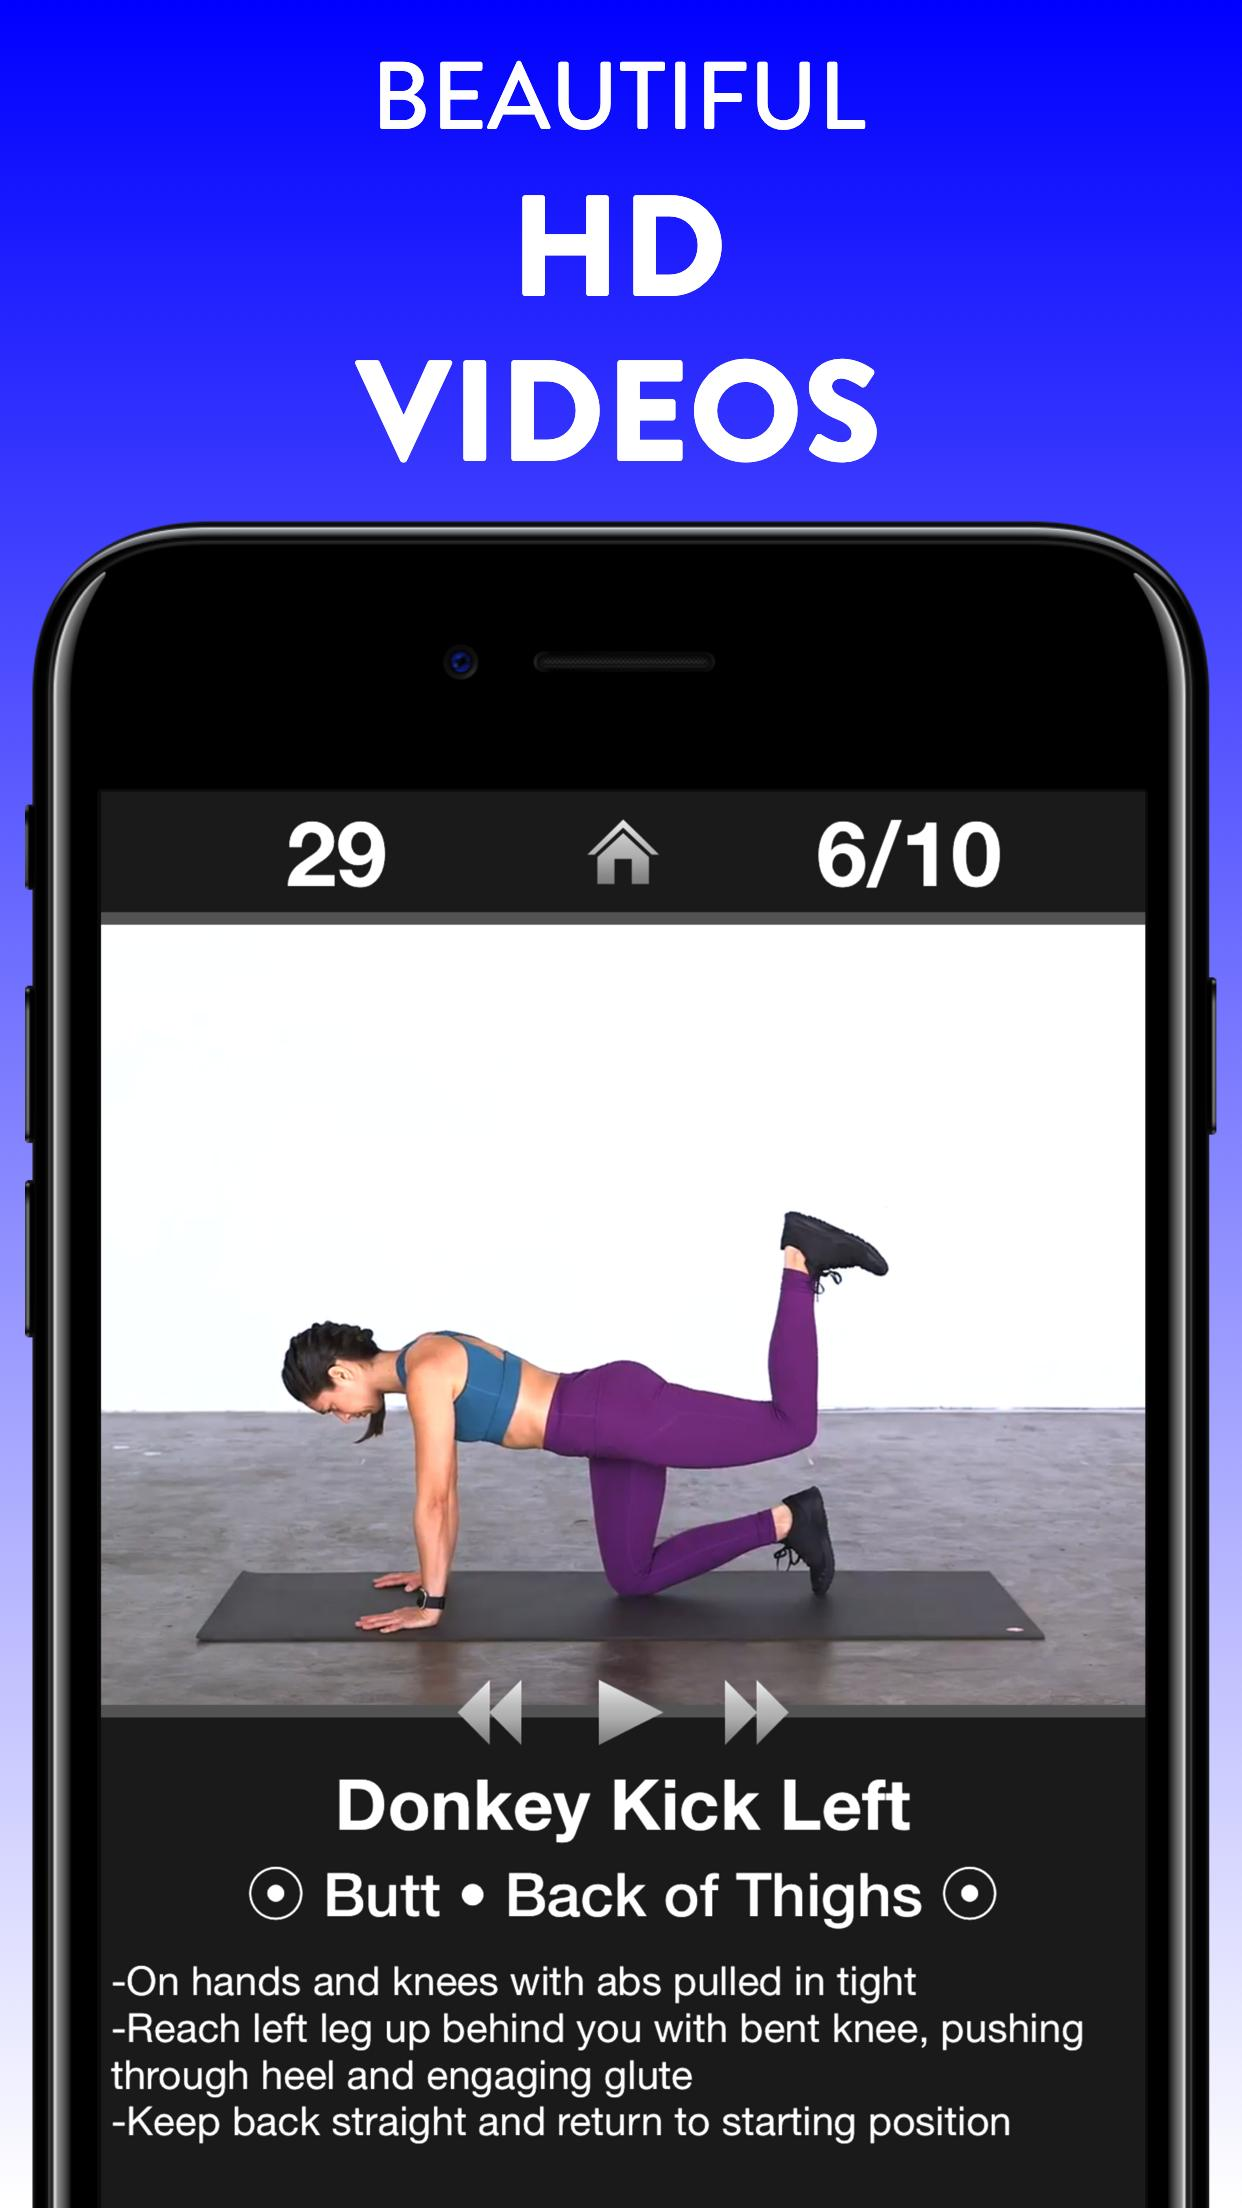 Daily Workouts - Exercise Fitness Workout Trainer 6.12 Screenshot 14